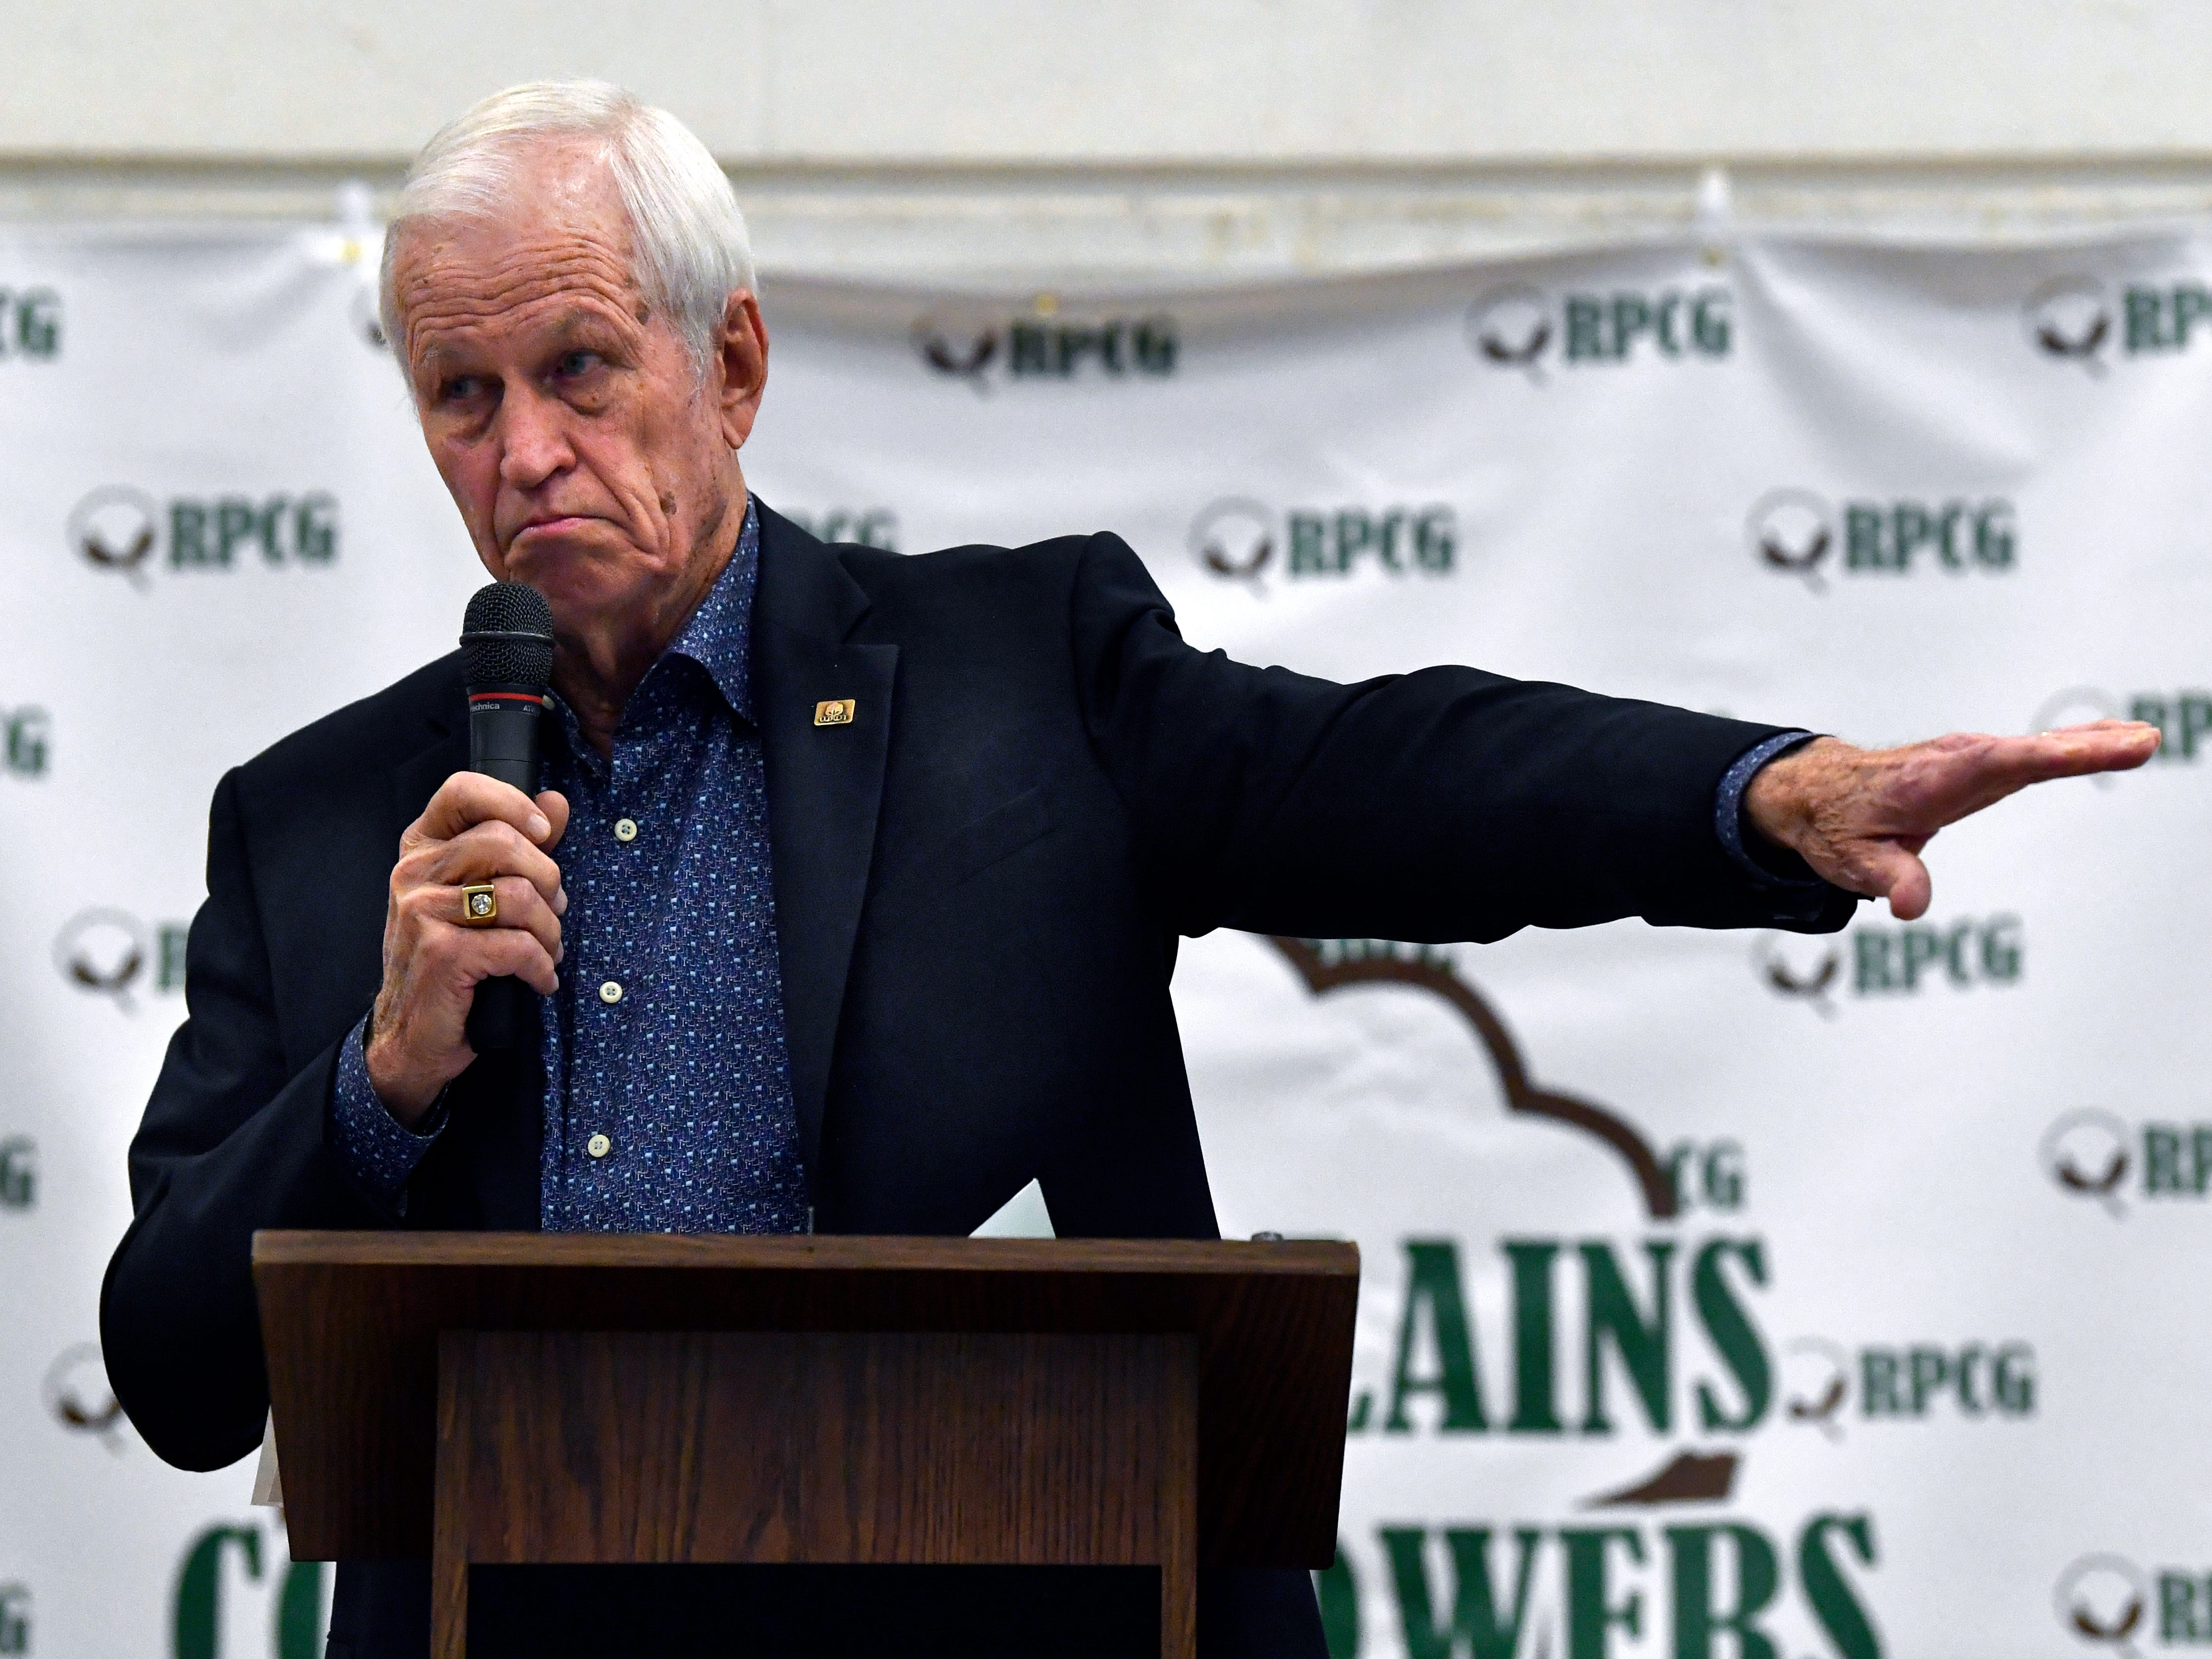 Former 17th District congressman Charles Stenholm speaks during the Rolling Plains Cotton Growers luncheon Tuesday Feb. 19, 2019 at the Taylor County Expo Center.